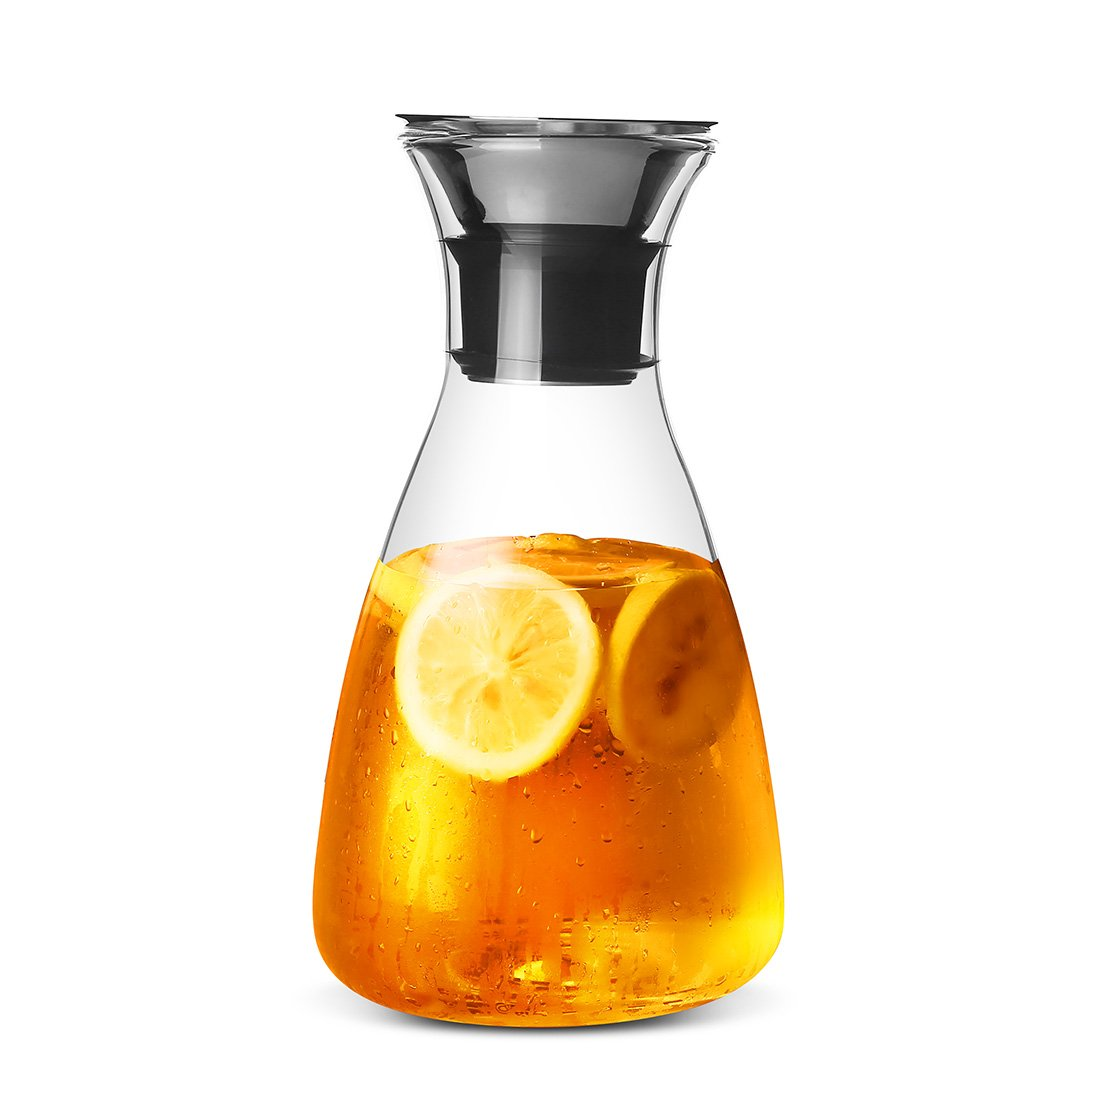 ONE DAY 1L/34Oz Borosilicate Glass Water Pitcher Carafe,Lemon Juice Jar,Glass Water Carafe Pitcher with Stainless Steel Lid, Hot and Cold Water Carafe,QJRGYBL070